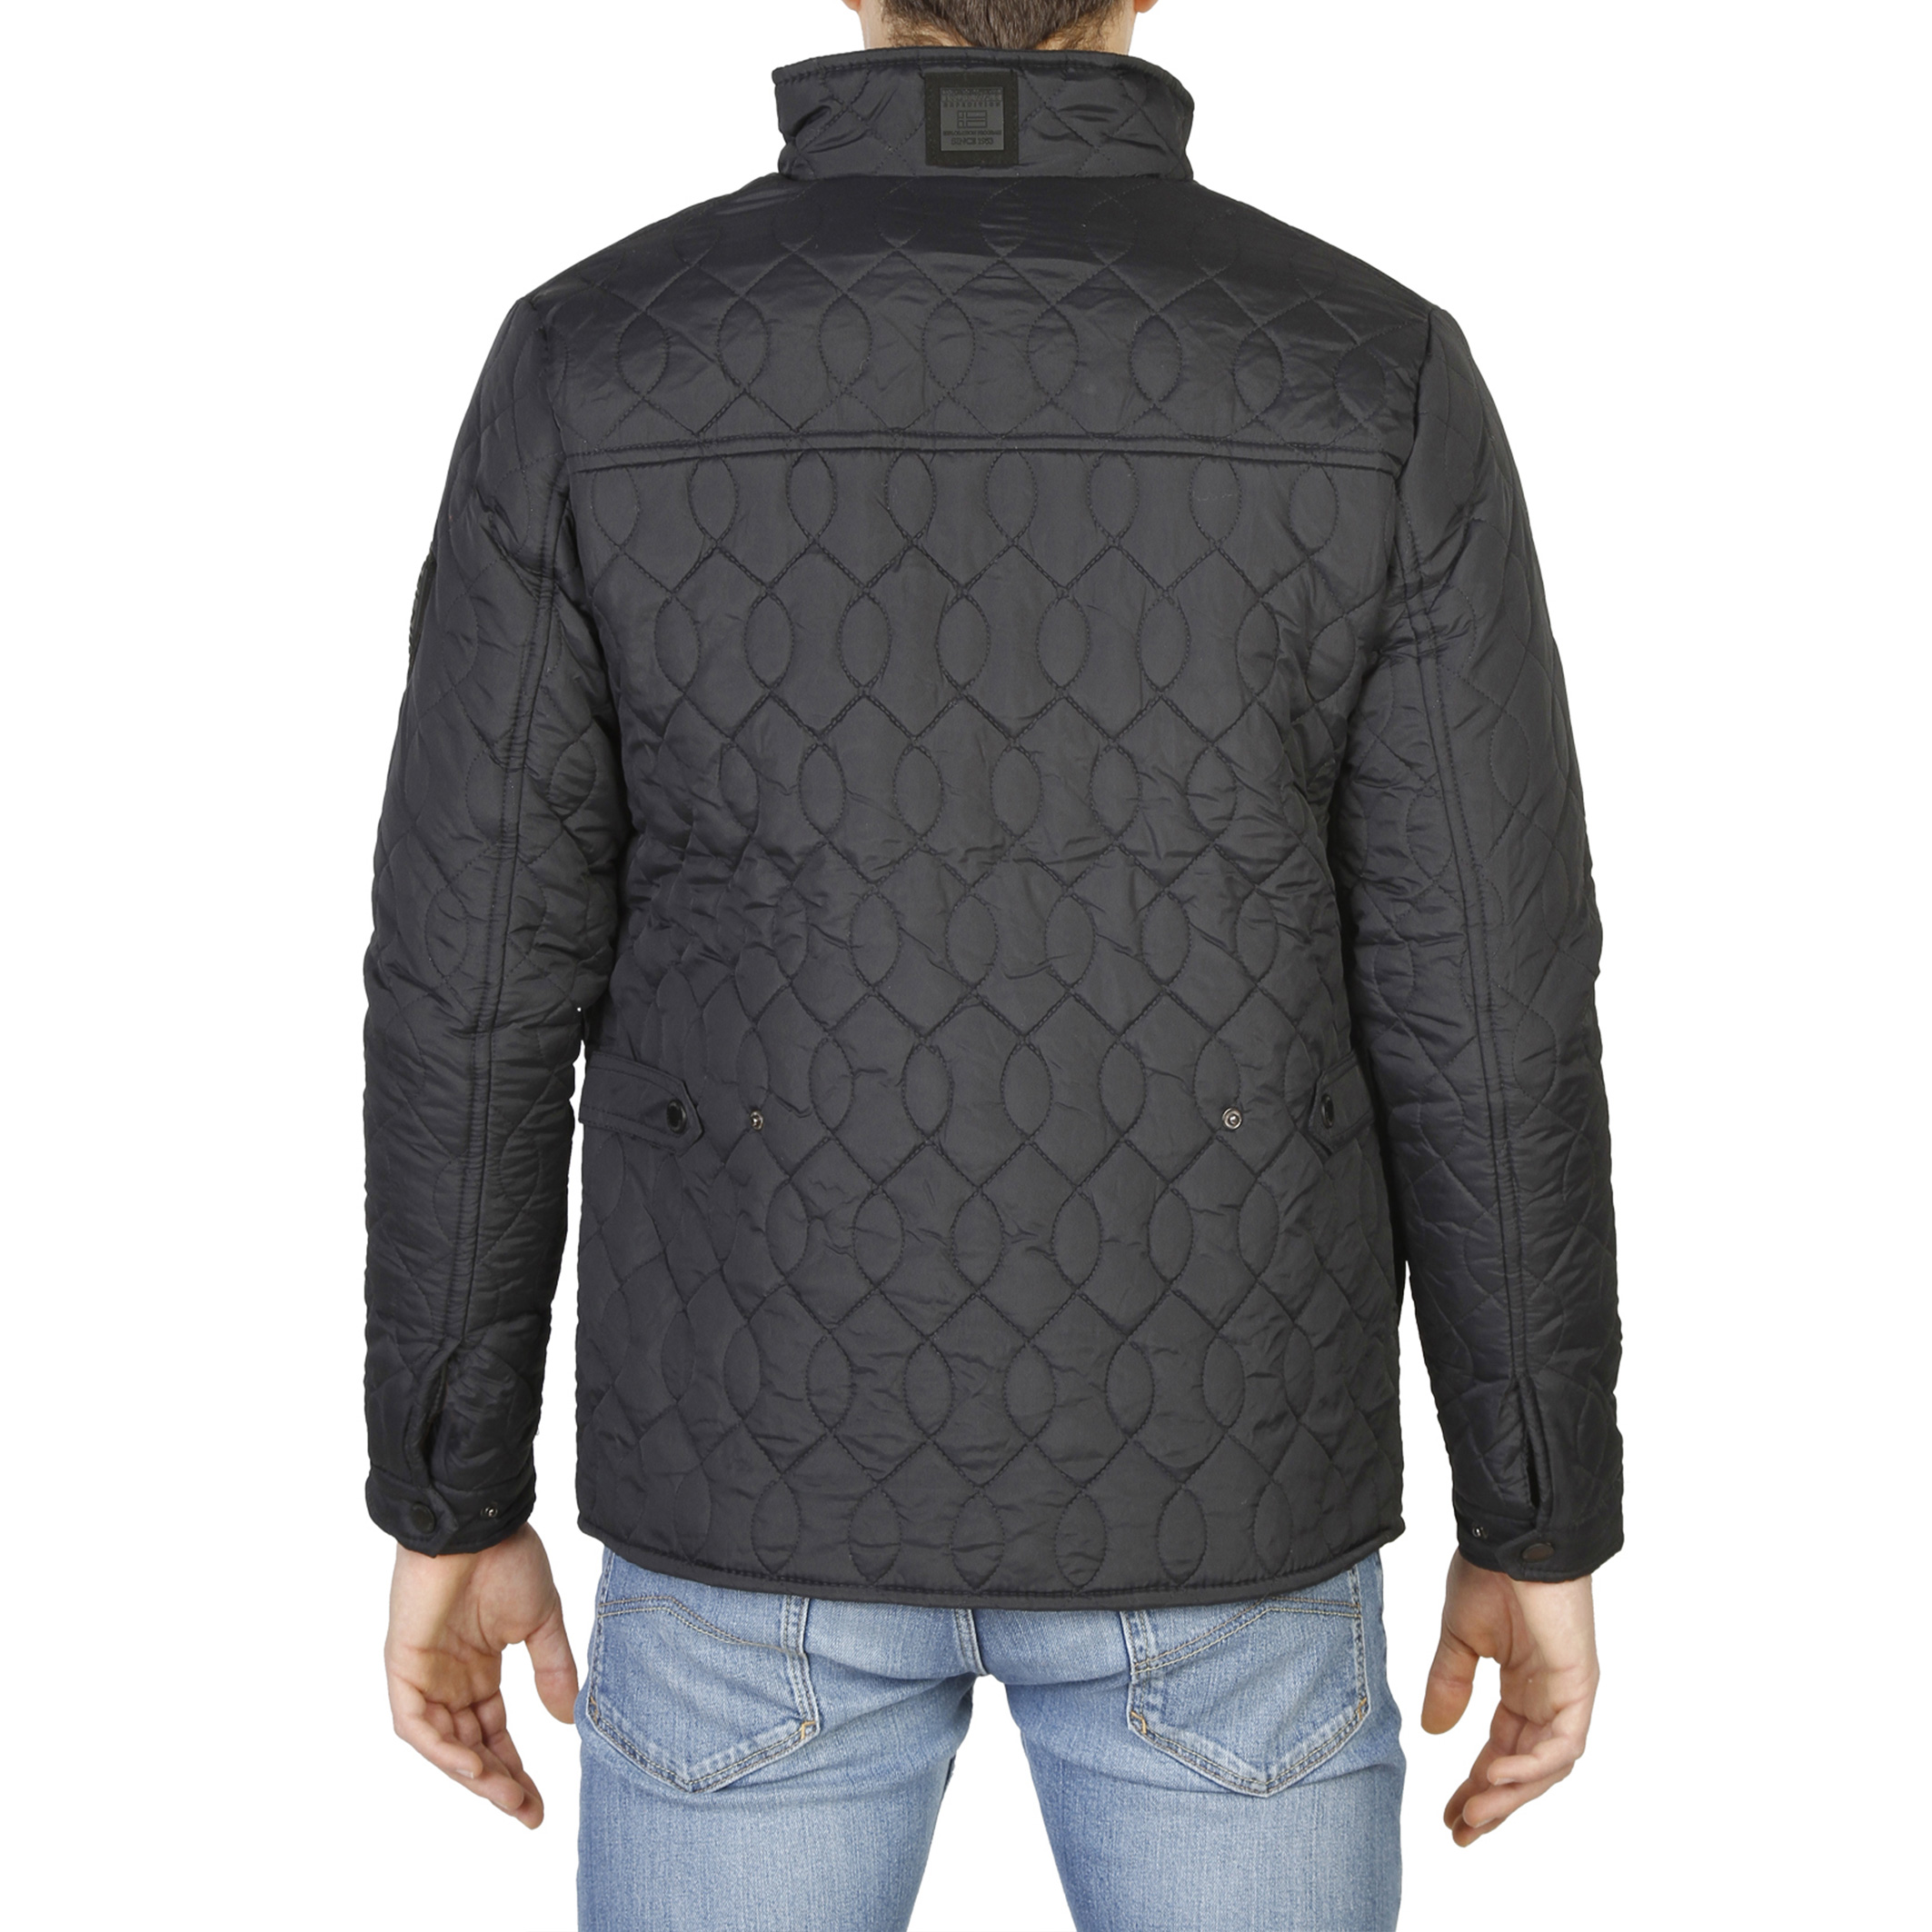 Vestes & blousons  Geographical norway Biturbo_man black